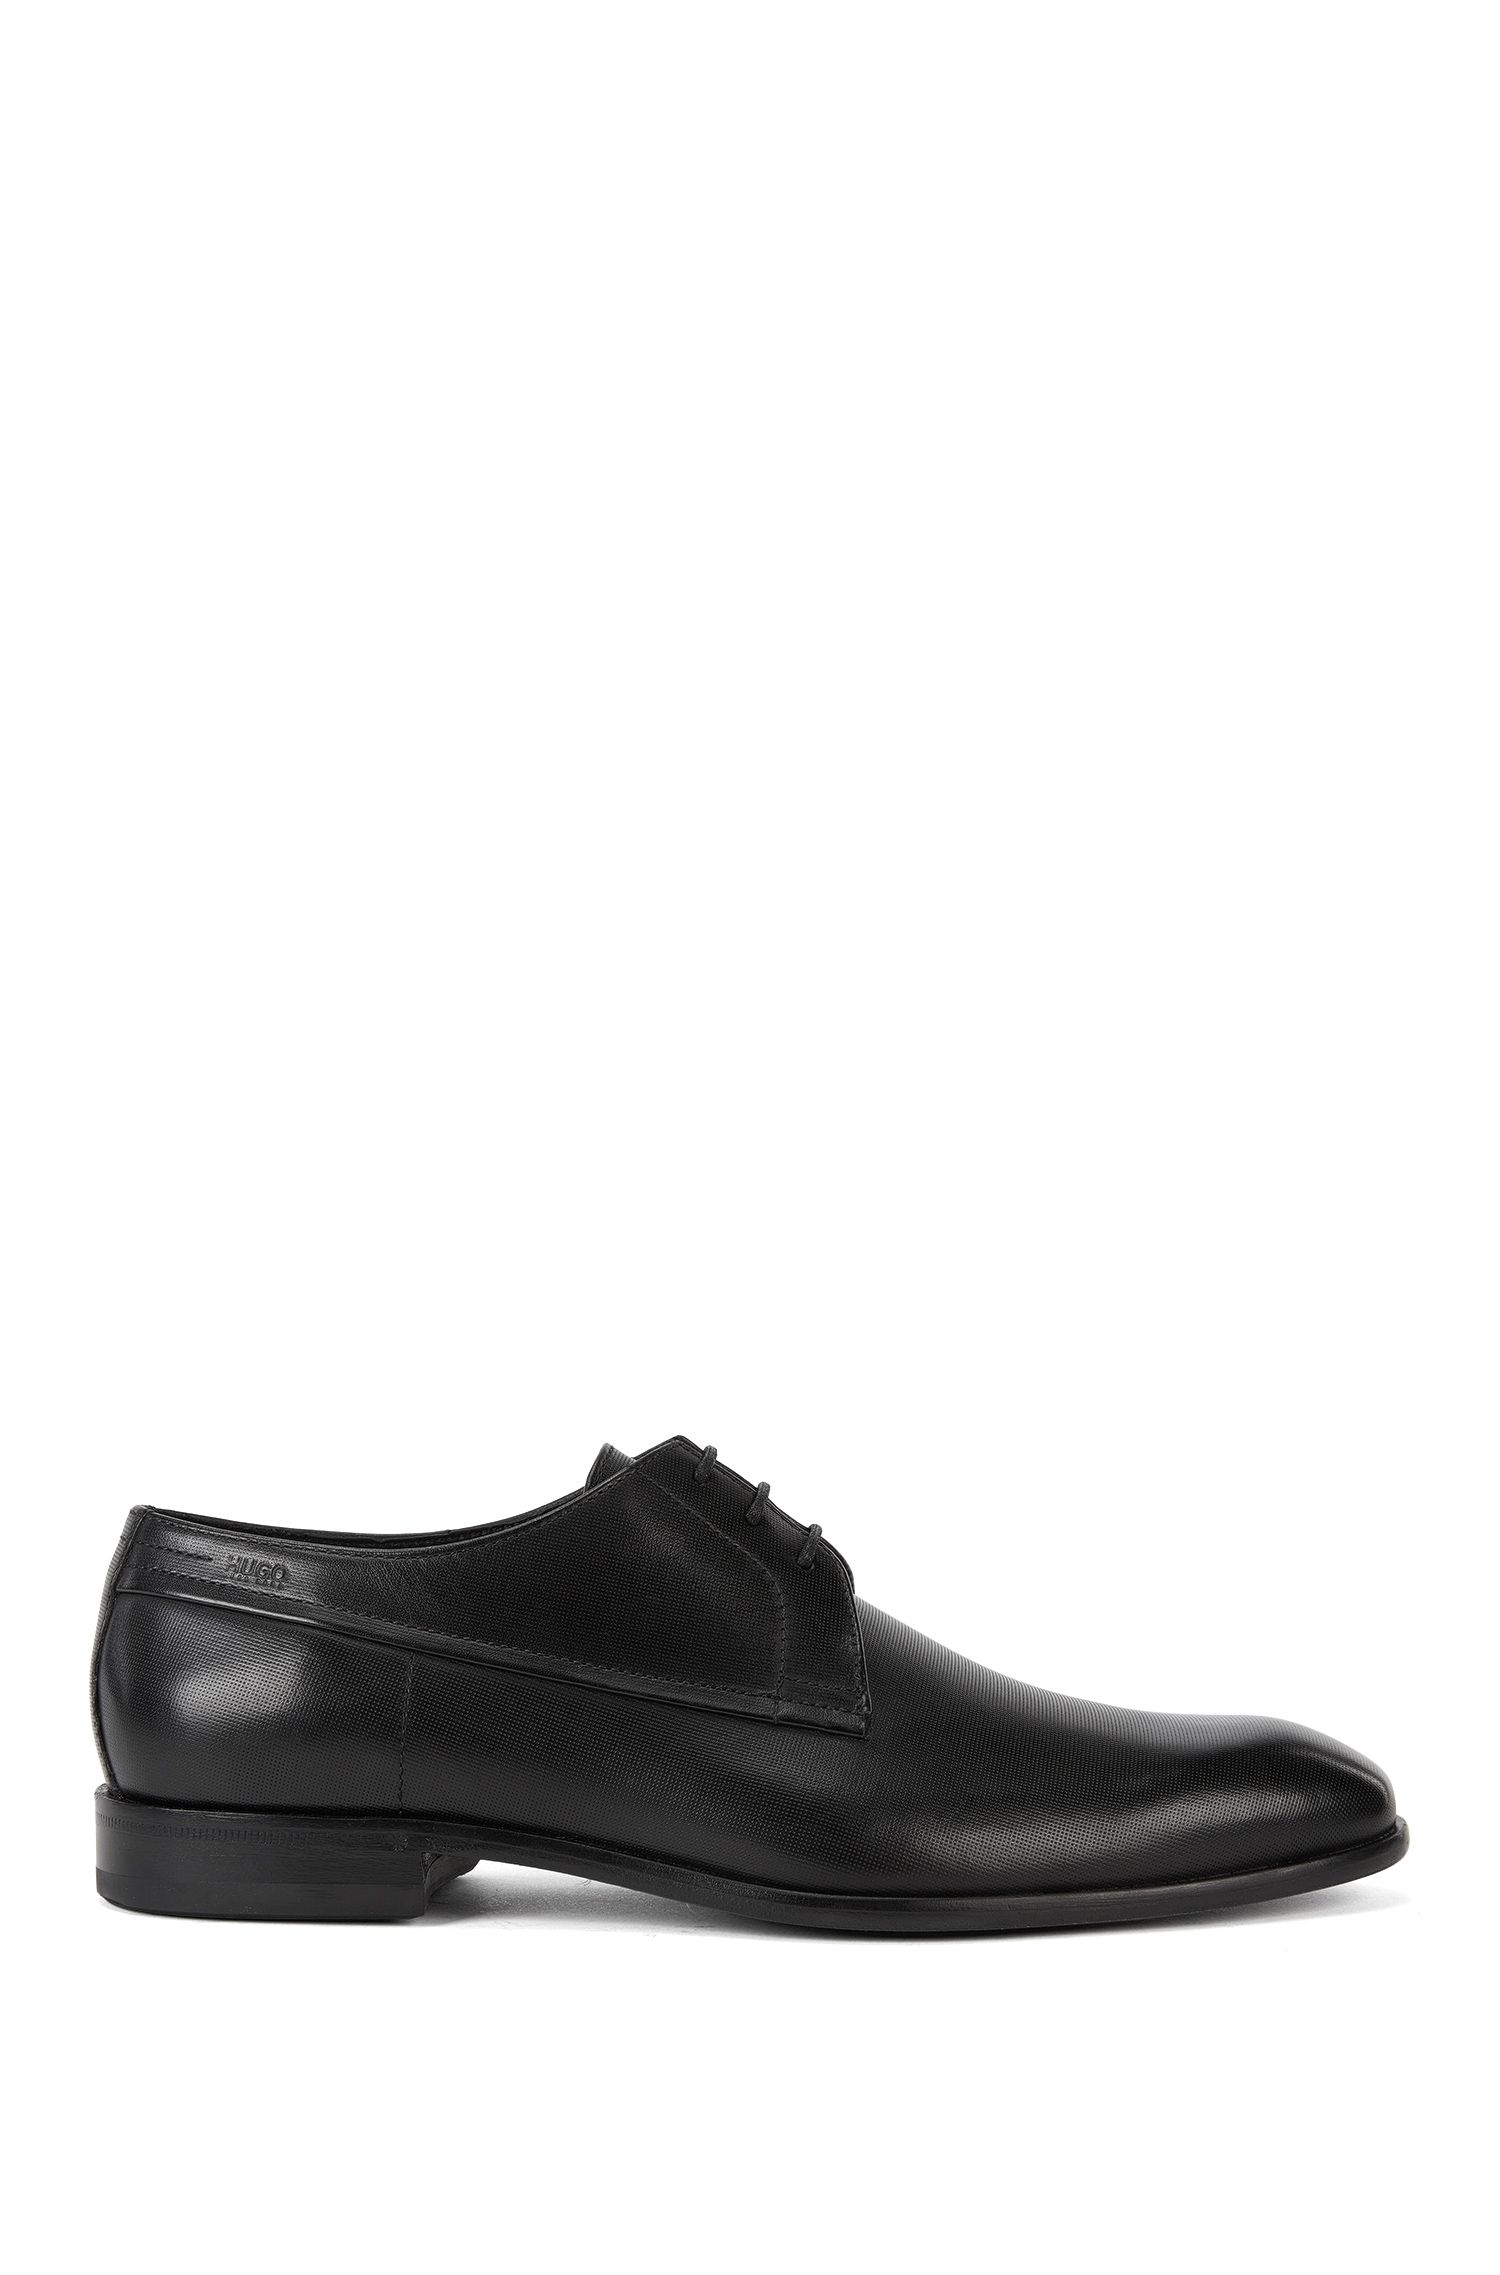 Derby shoes in embossed calf leather by HUGO Man